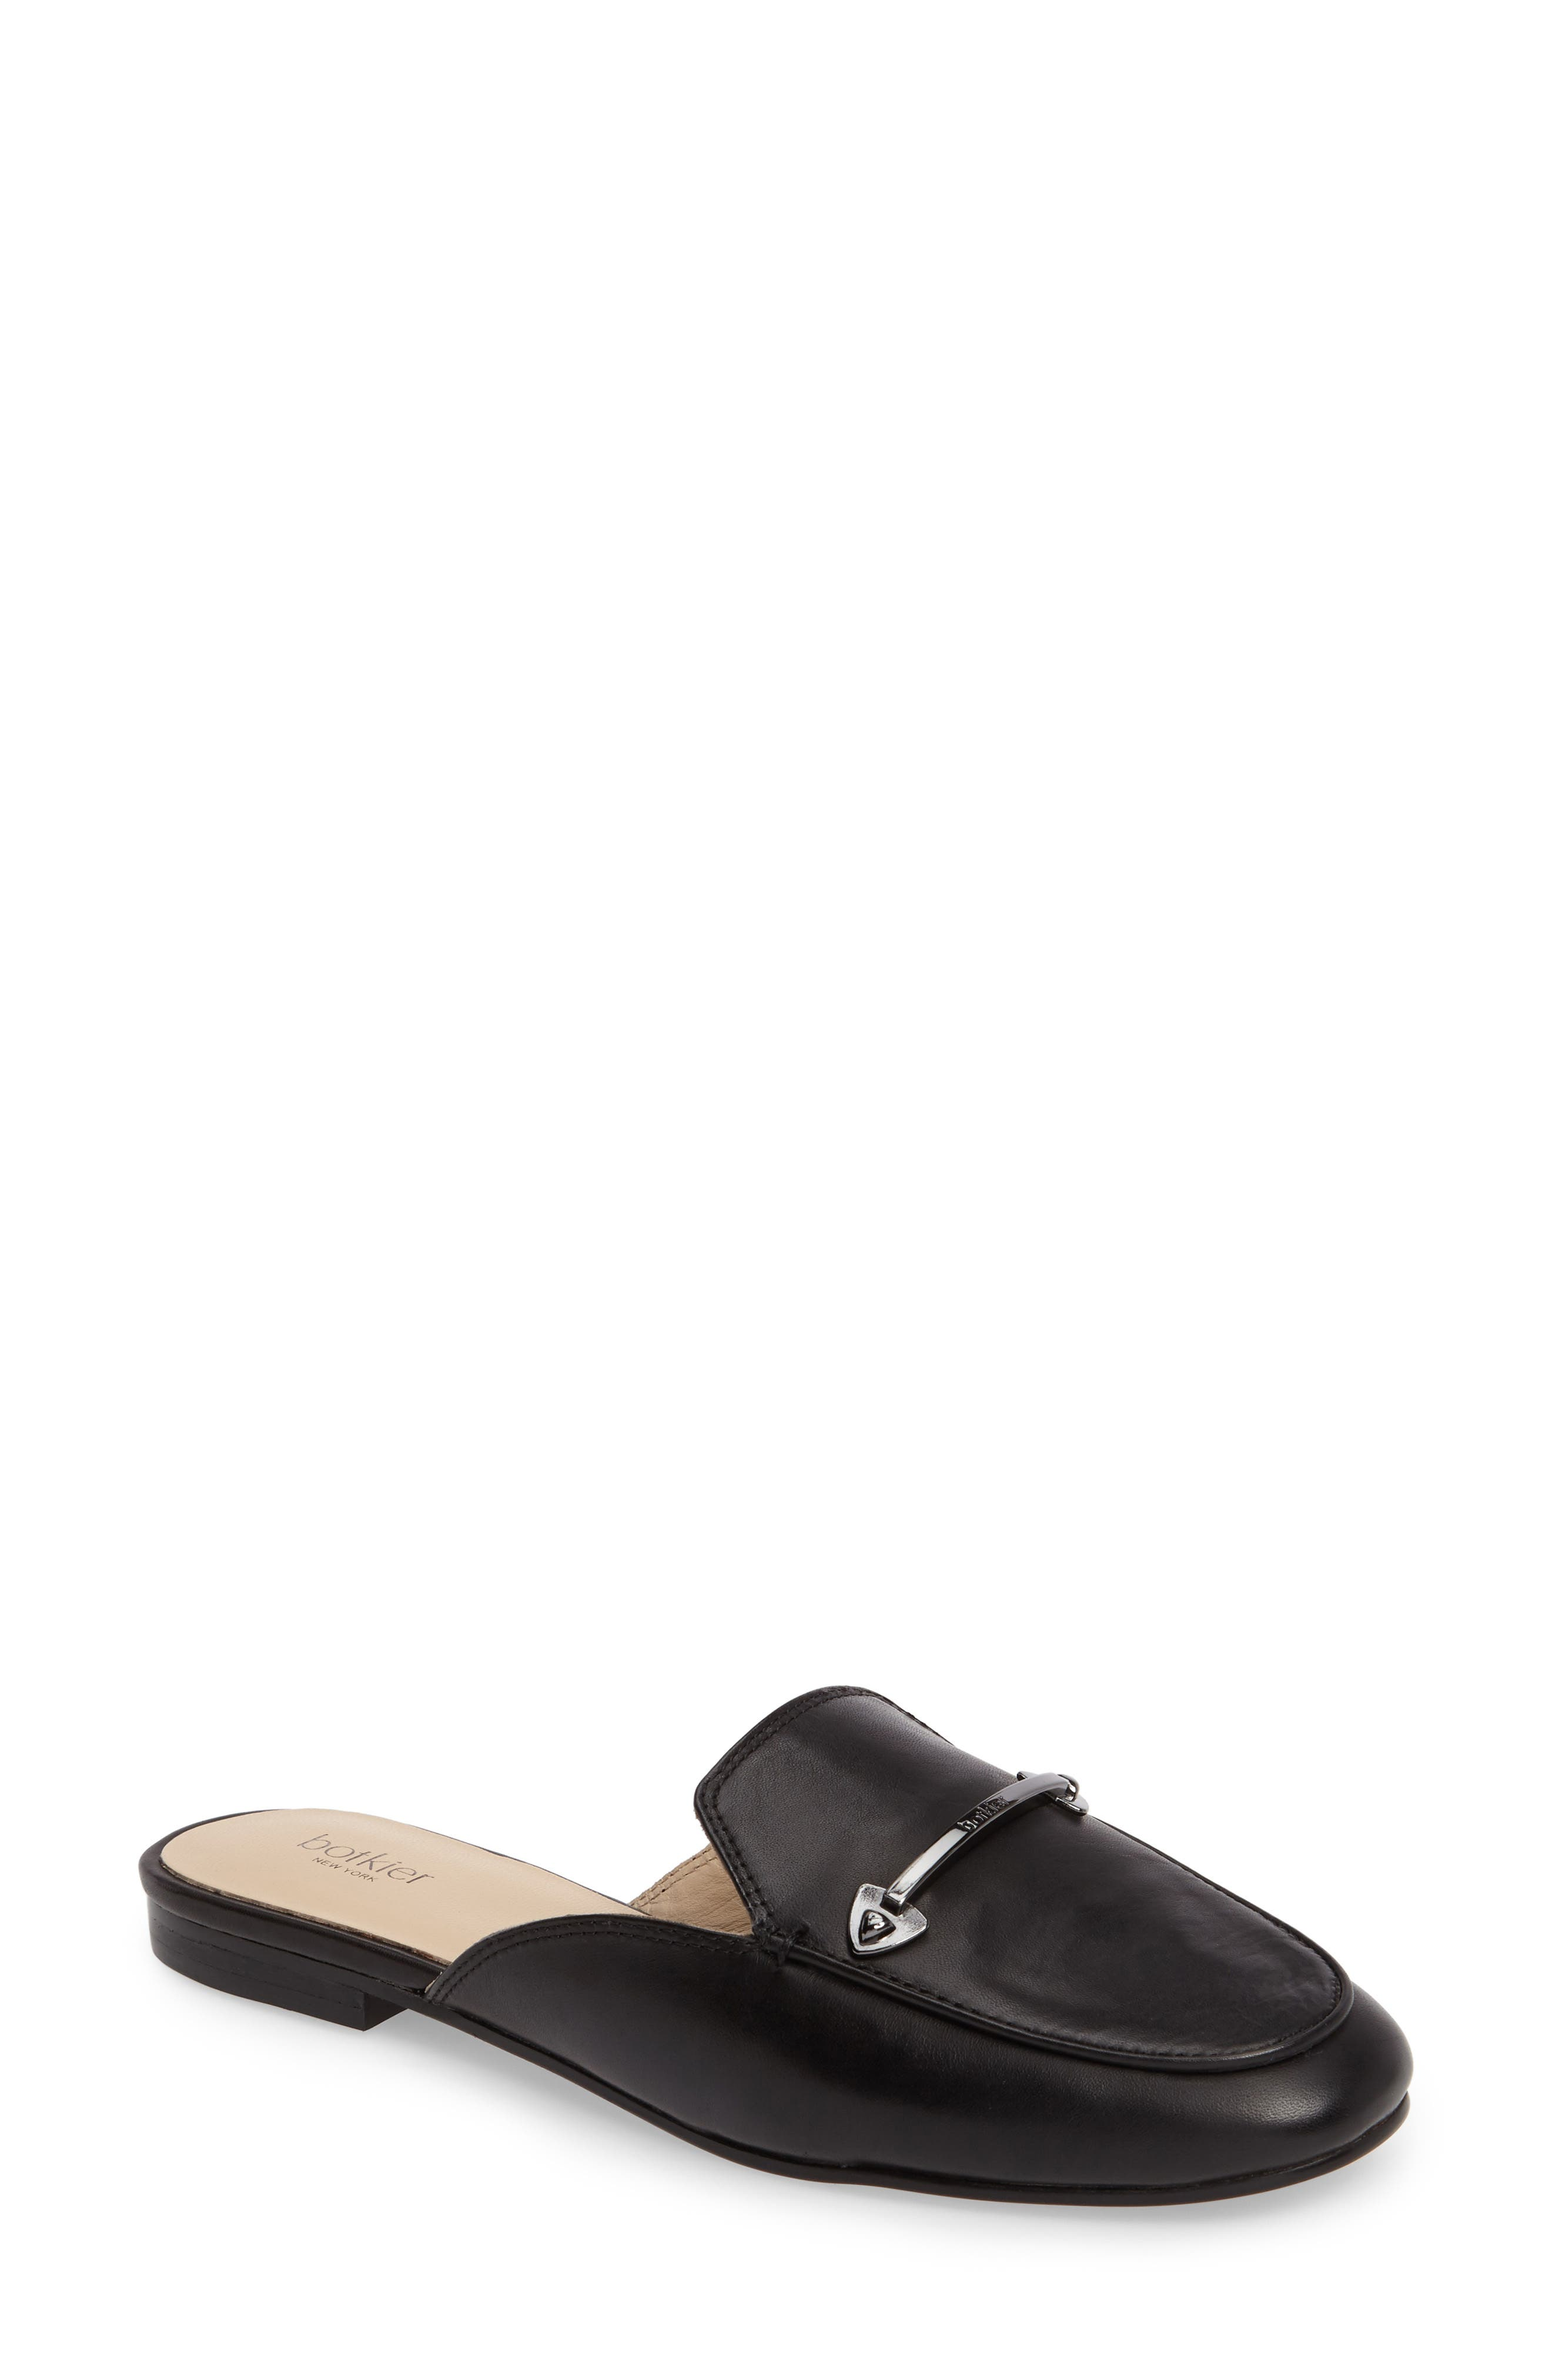 Clare Loafer Mule,                             Main thumbnail 1, color,                             Black